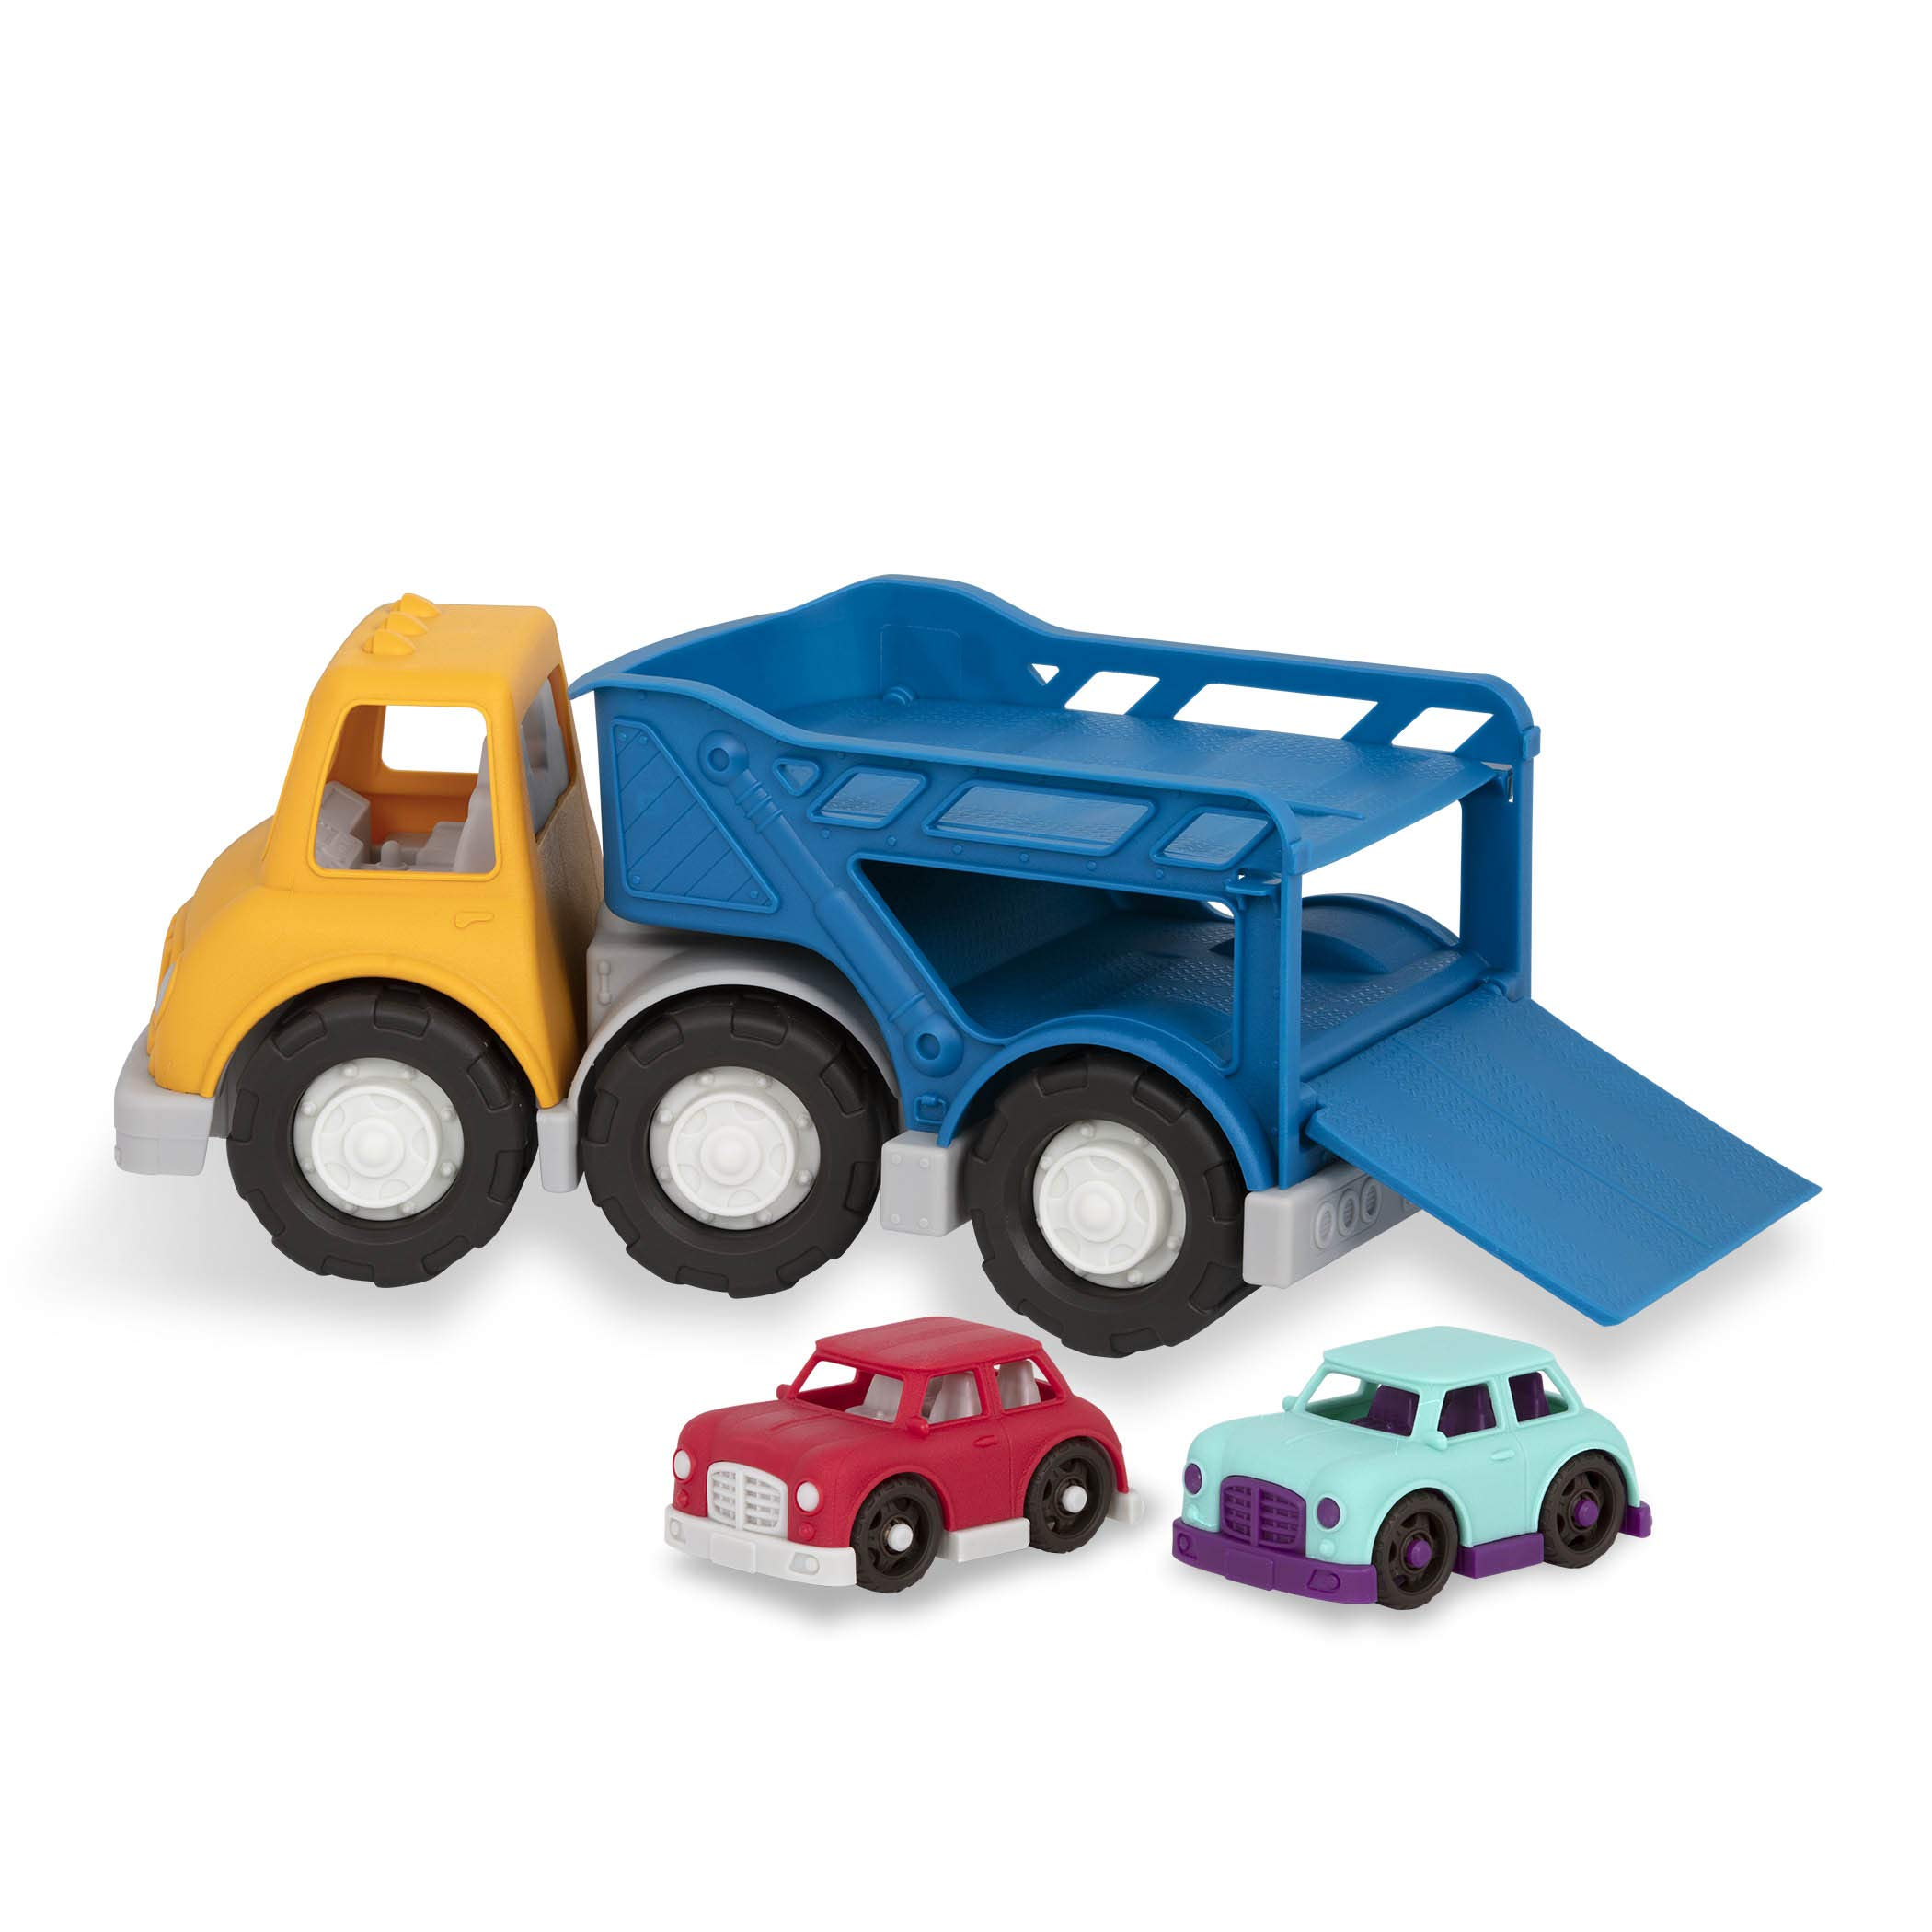 Wonder Wheels by Battat - Car Carrier Truck - Toy Truck with 2 Toy Cars for Toddlers Aged 1 & Up (3Pc) by Wonder Wheels by Battat